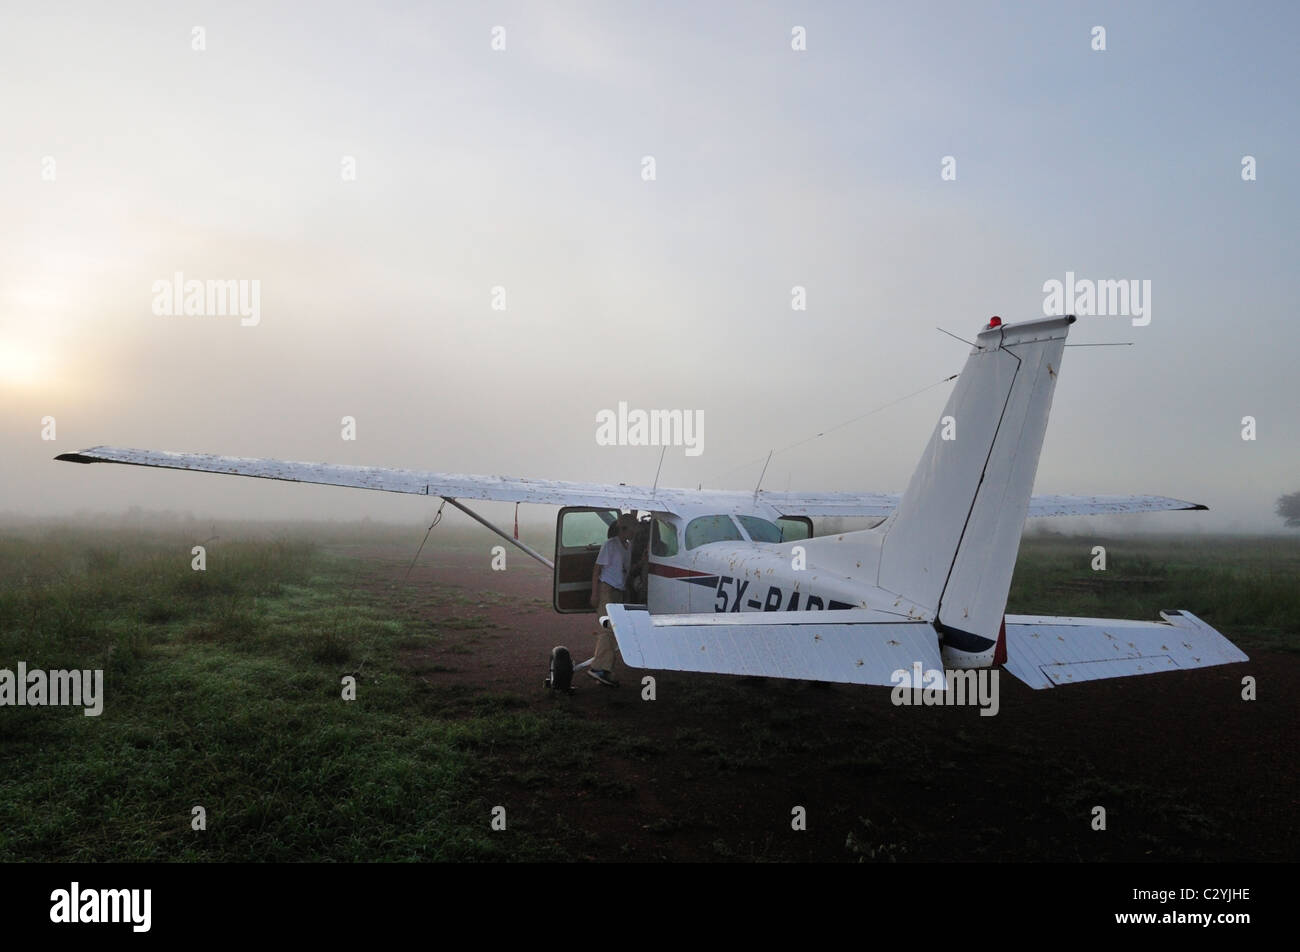 Cessna 172 early morning after night rain and flying ant hatch, Adjumani, Northern Uganda - Stock Image